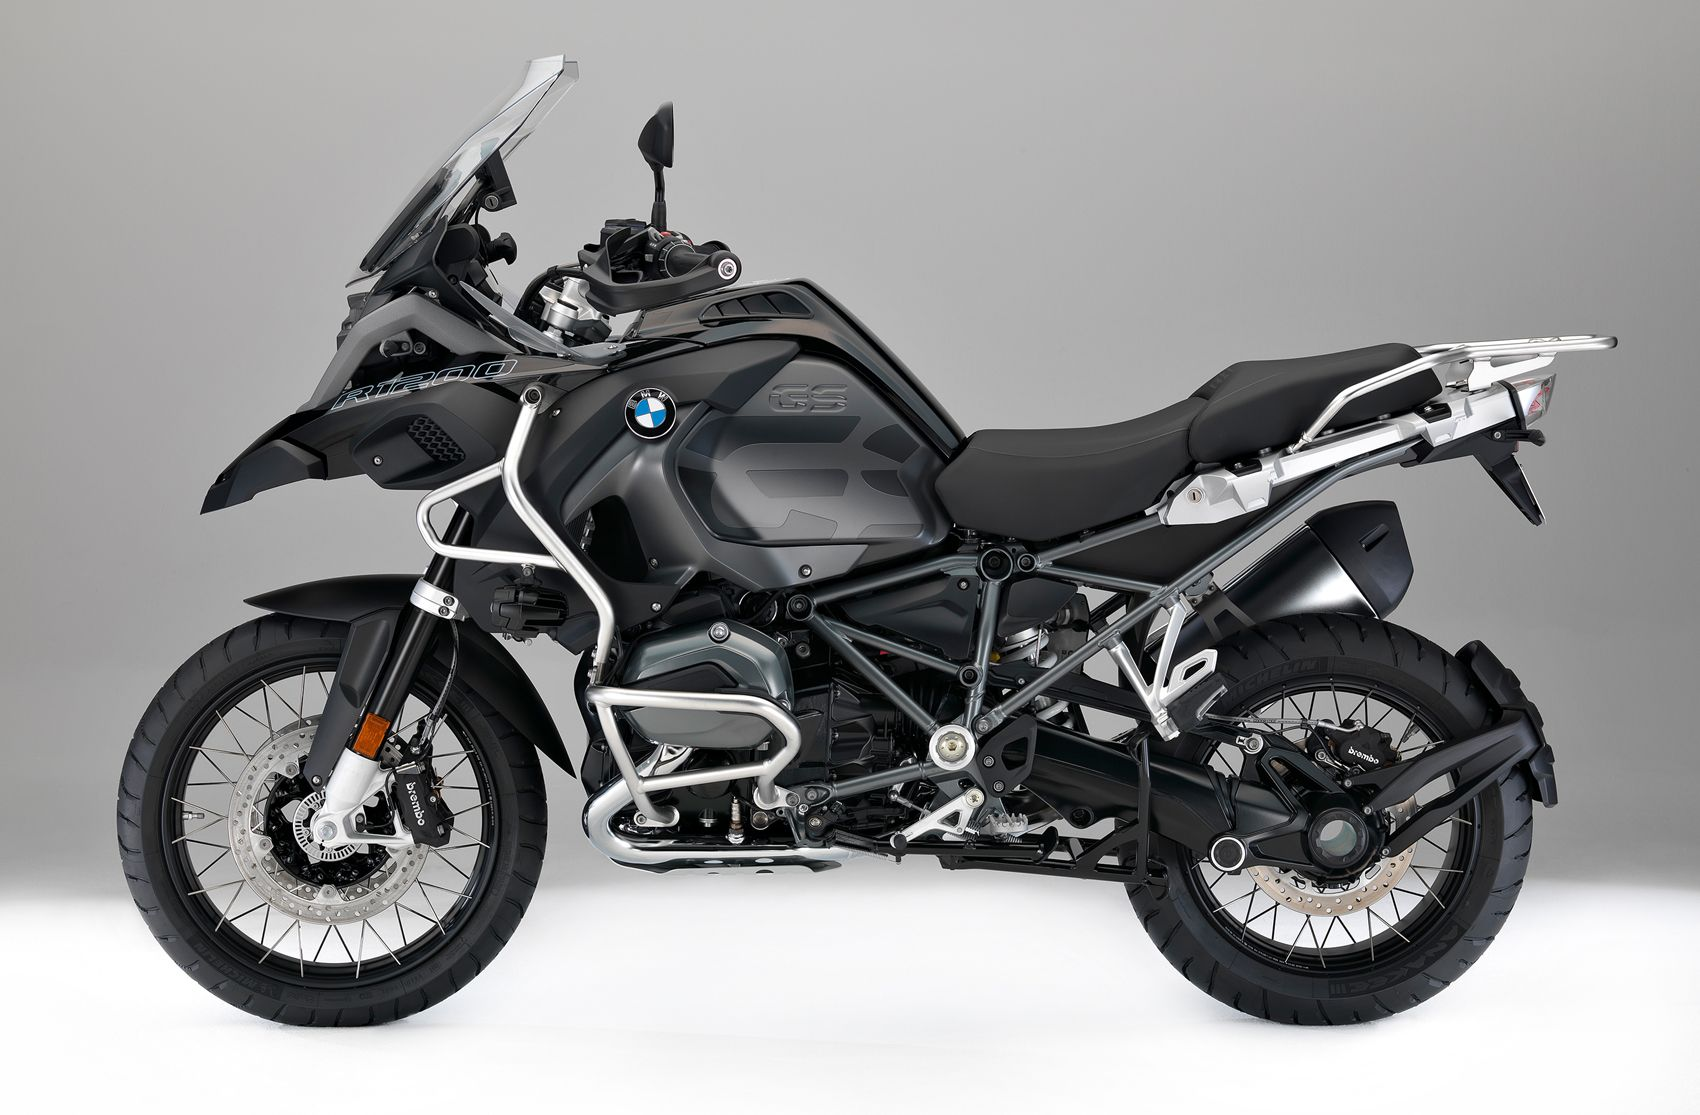 Motorcycle Specifications And Reviews On All Motorcycles Avec